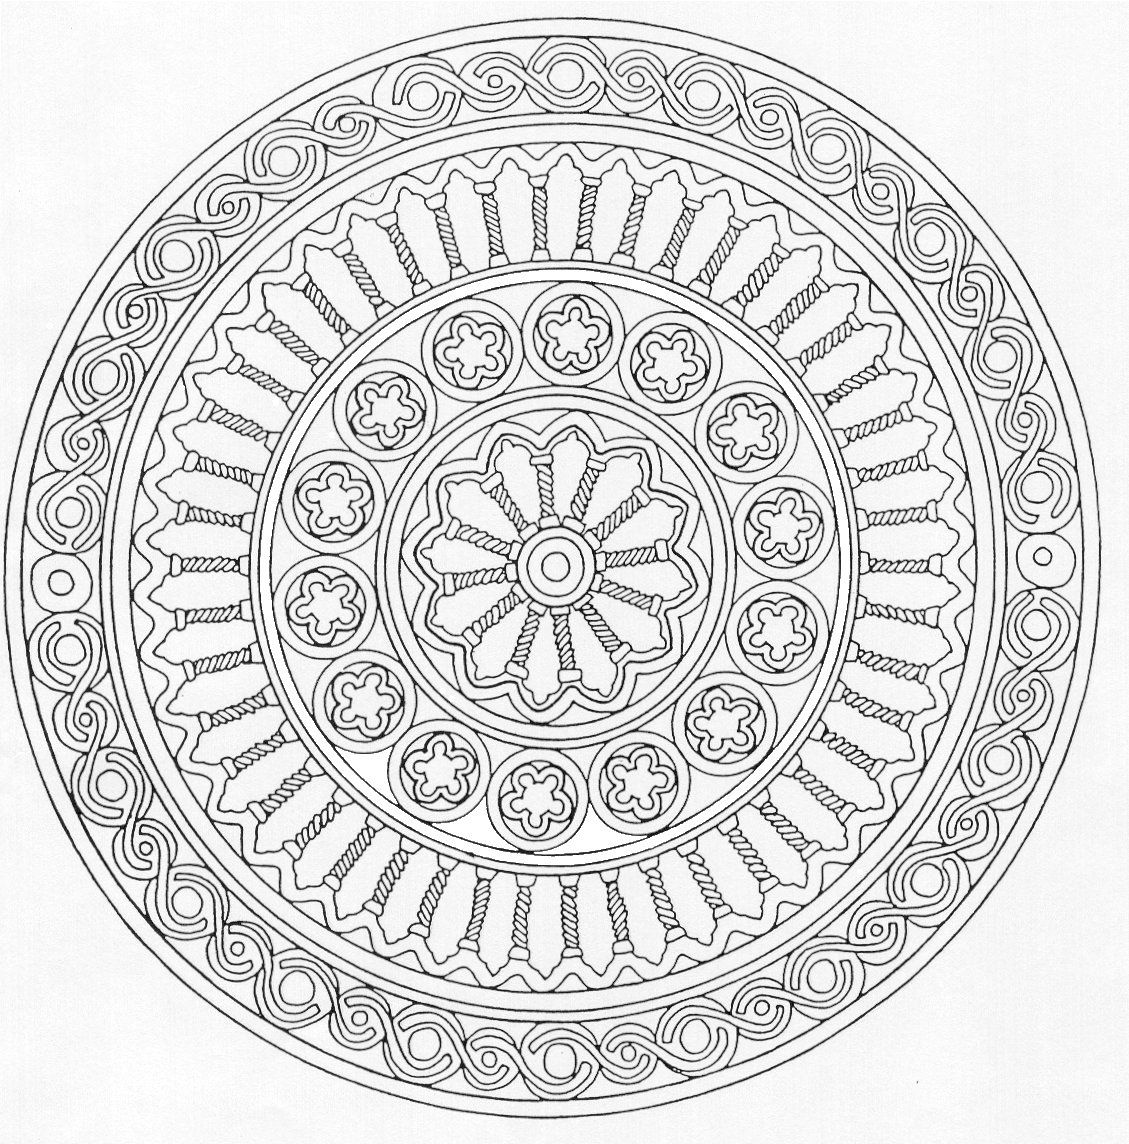 Picsofmandalas coloring onlinecoloring gamescoloring pages